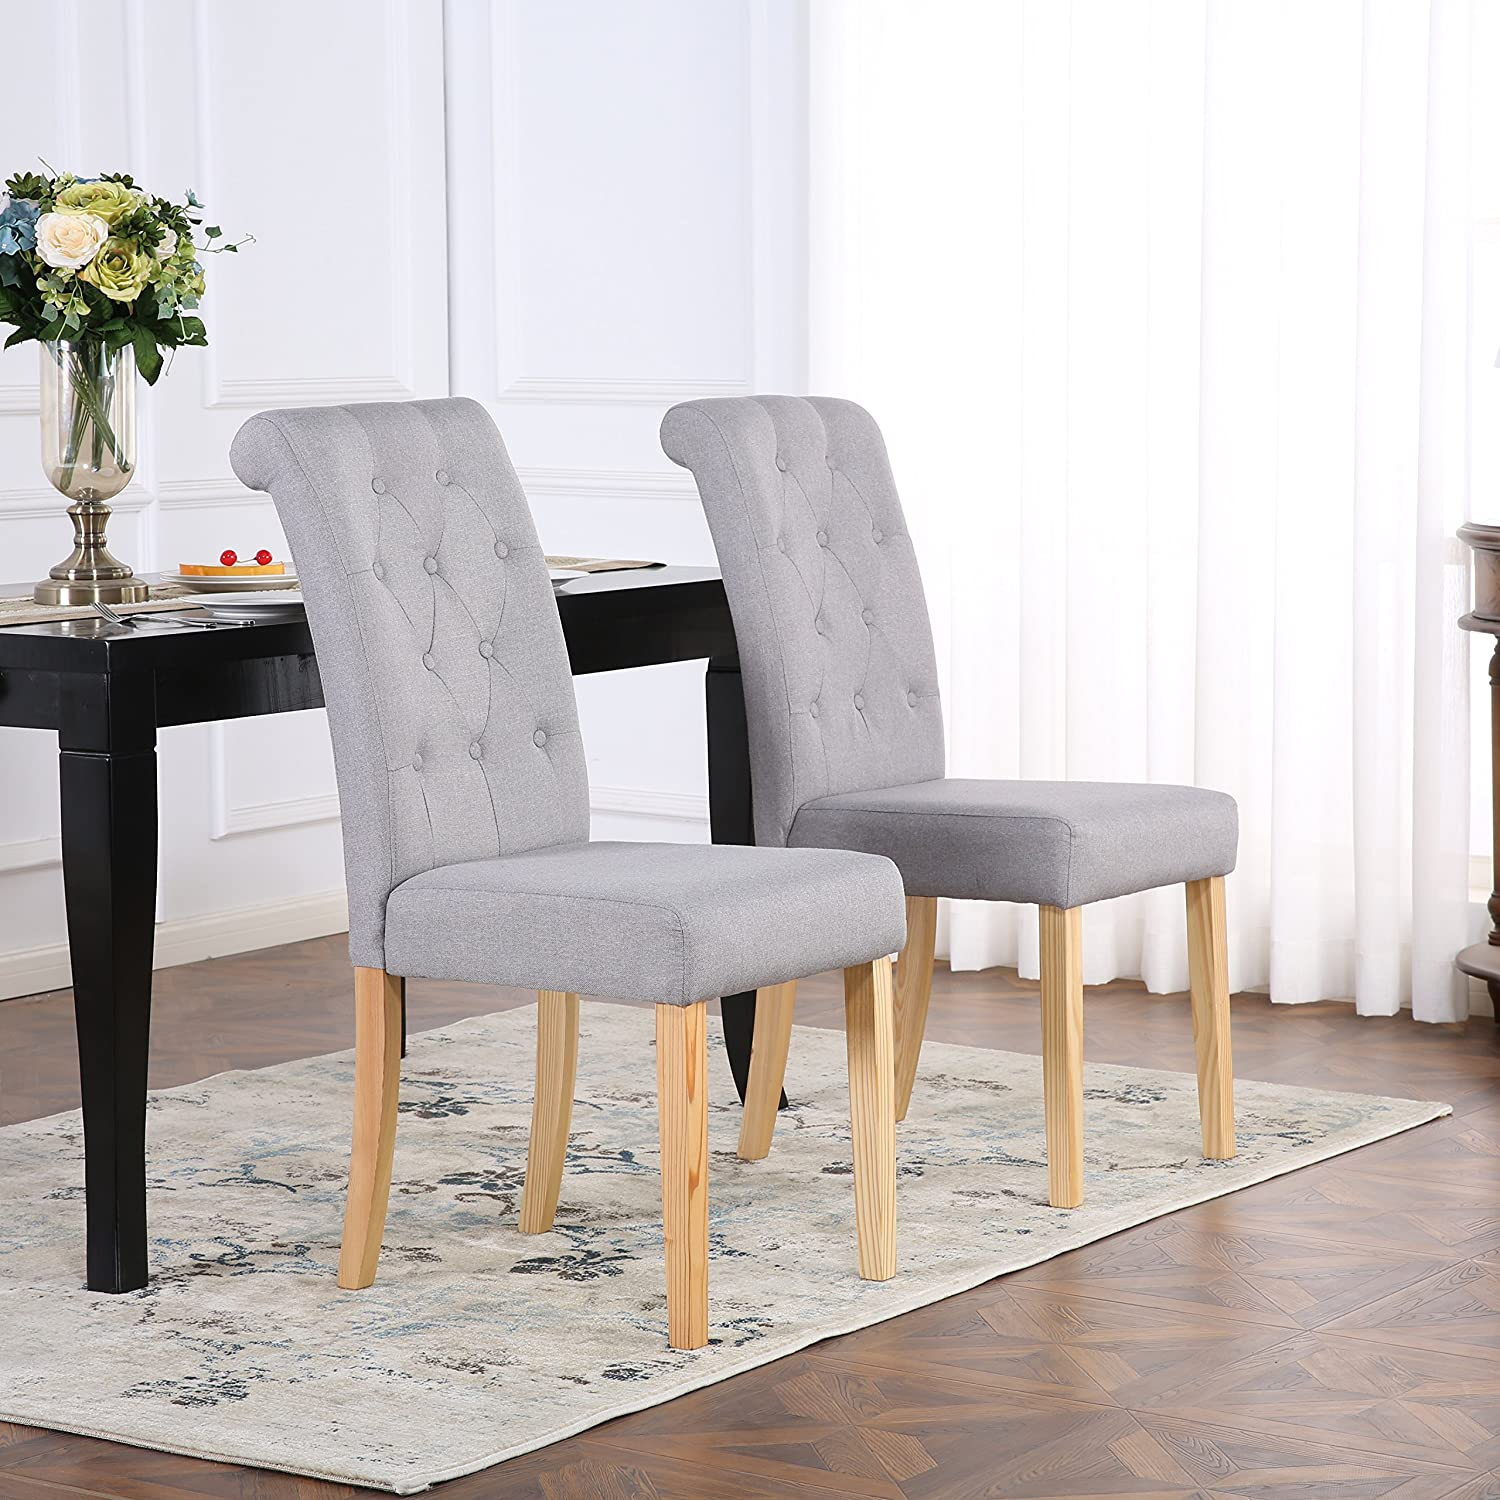 Set Of 4 Premium Linen Fabric Dining Chairs Scroll High Back Light Grey Amazon Co Uk Kitchen Home